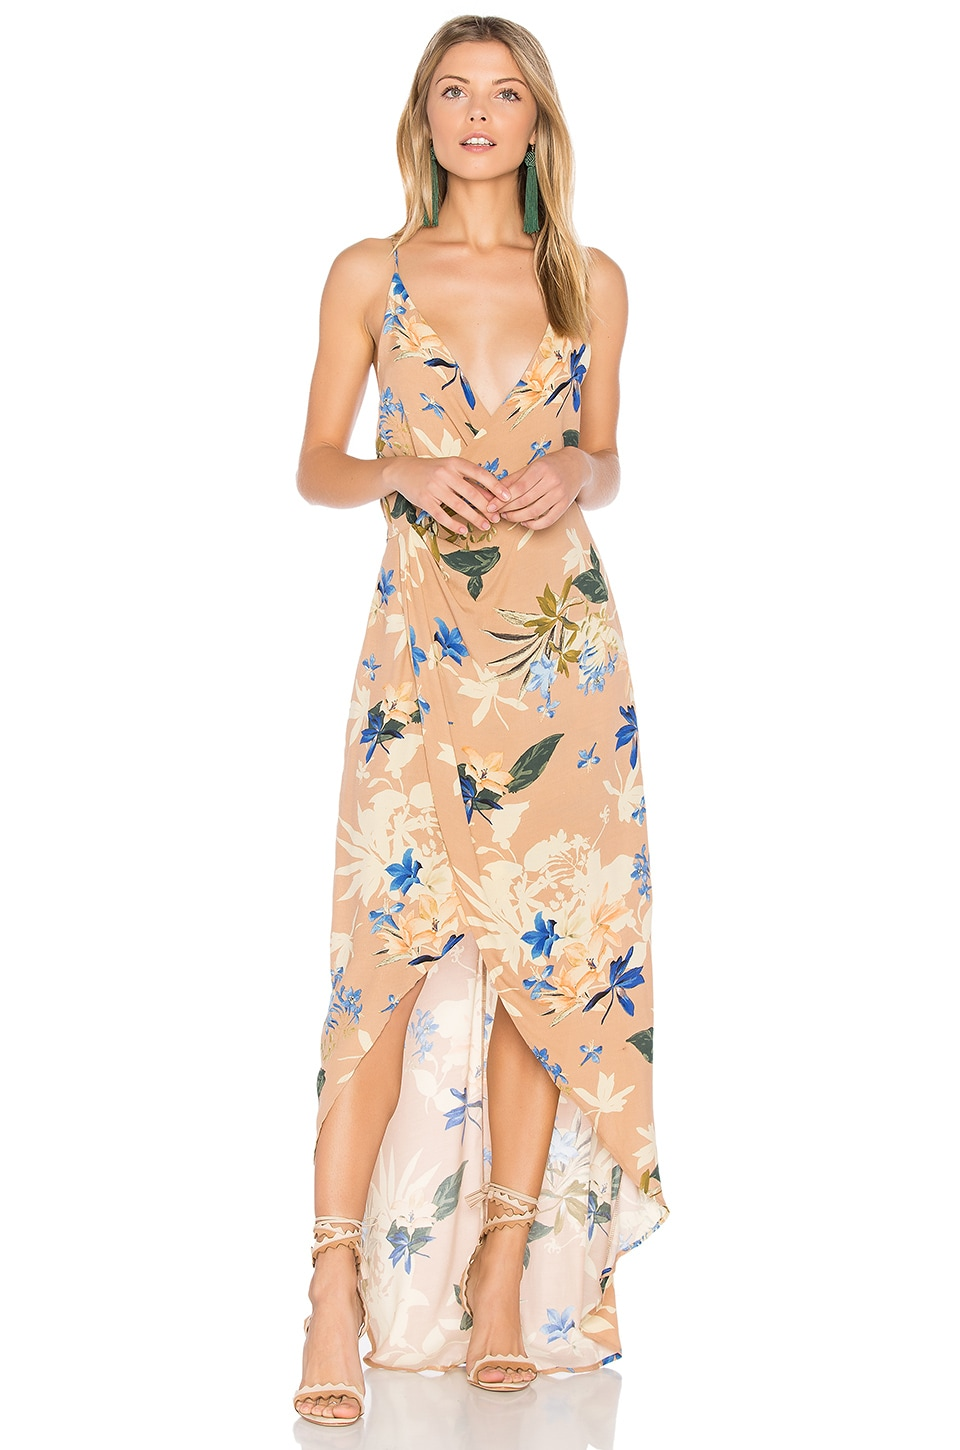 ASTR Penelope Dress in Paradise Floral